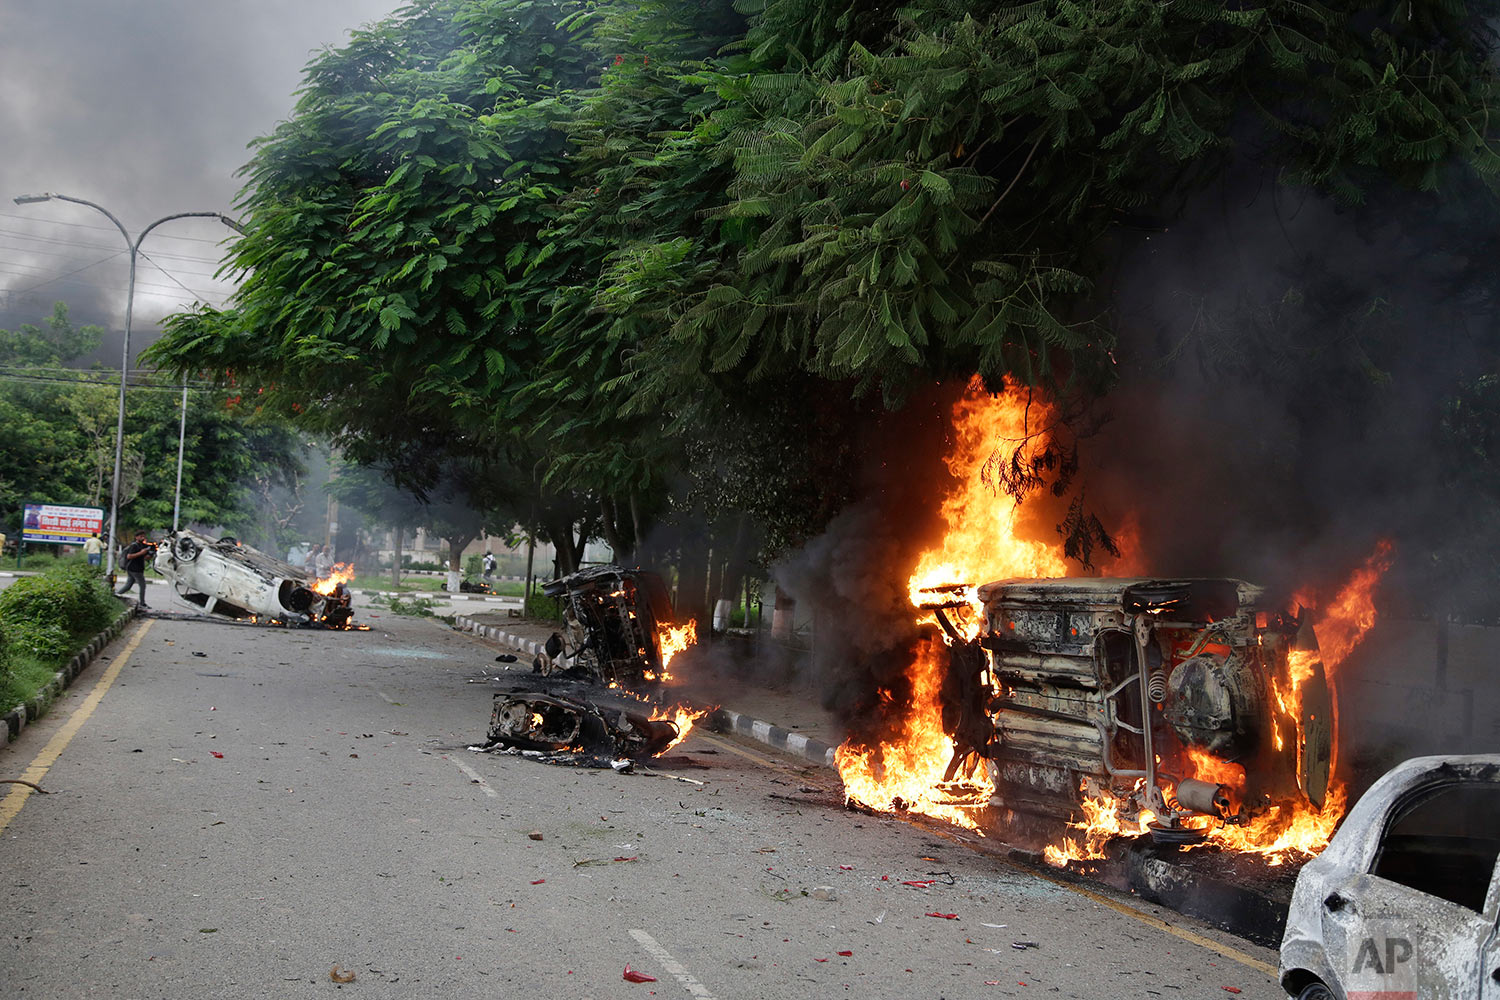 Vehicles set alight by Dera Sacha Sauda sect members burn in the streets of Panchkula, India, Friday, Aug. 25, 2017. (AP Photo/Altaf Qadri)